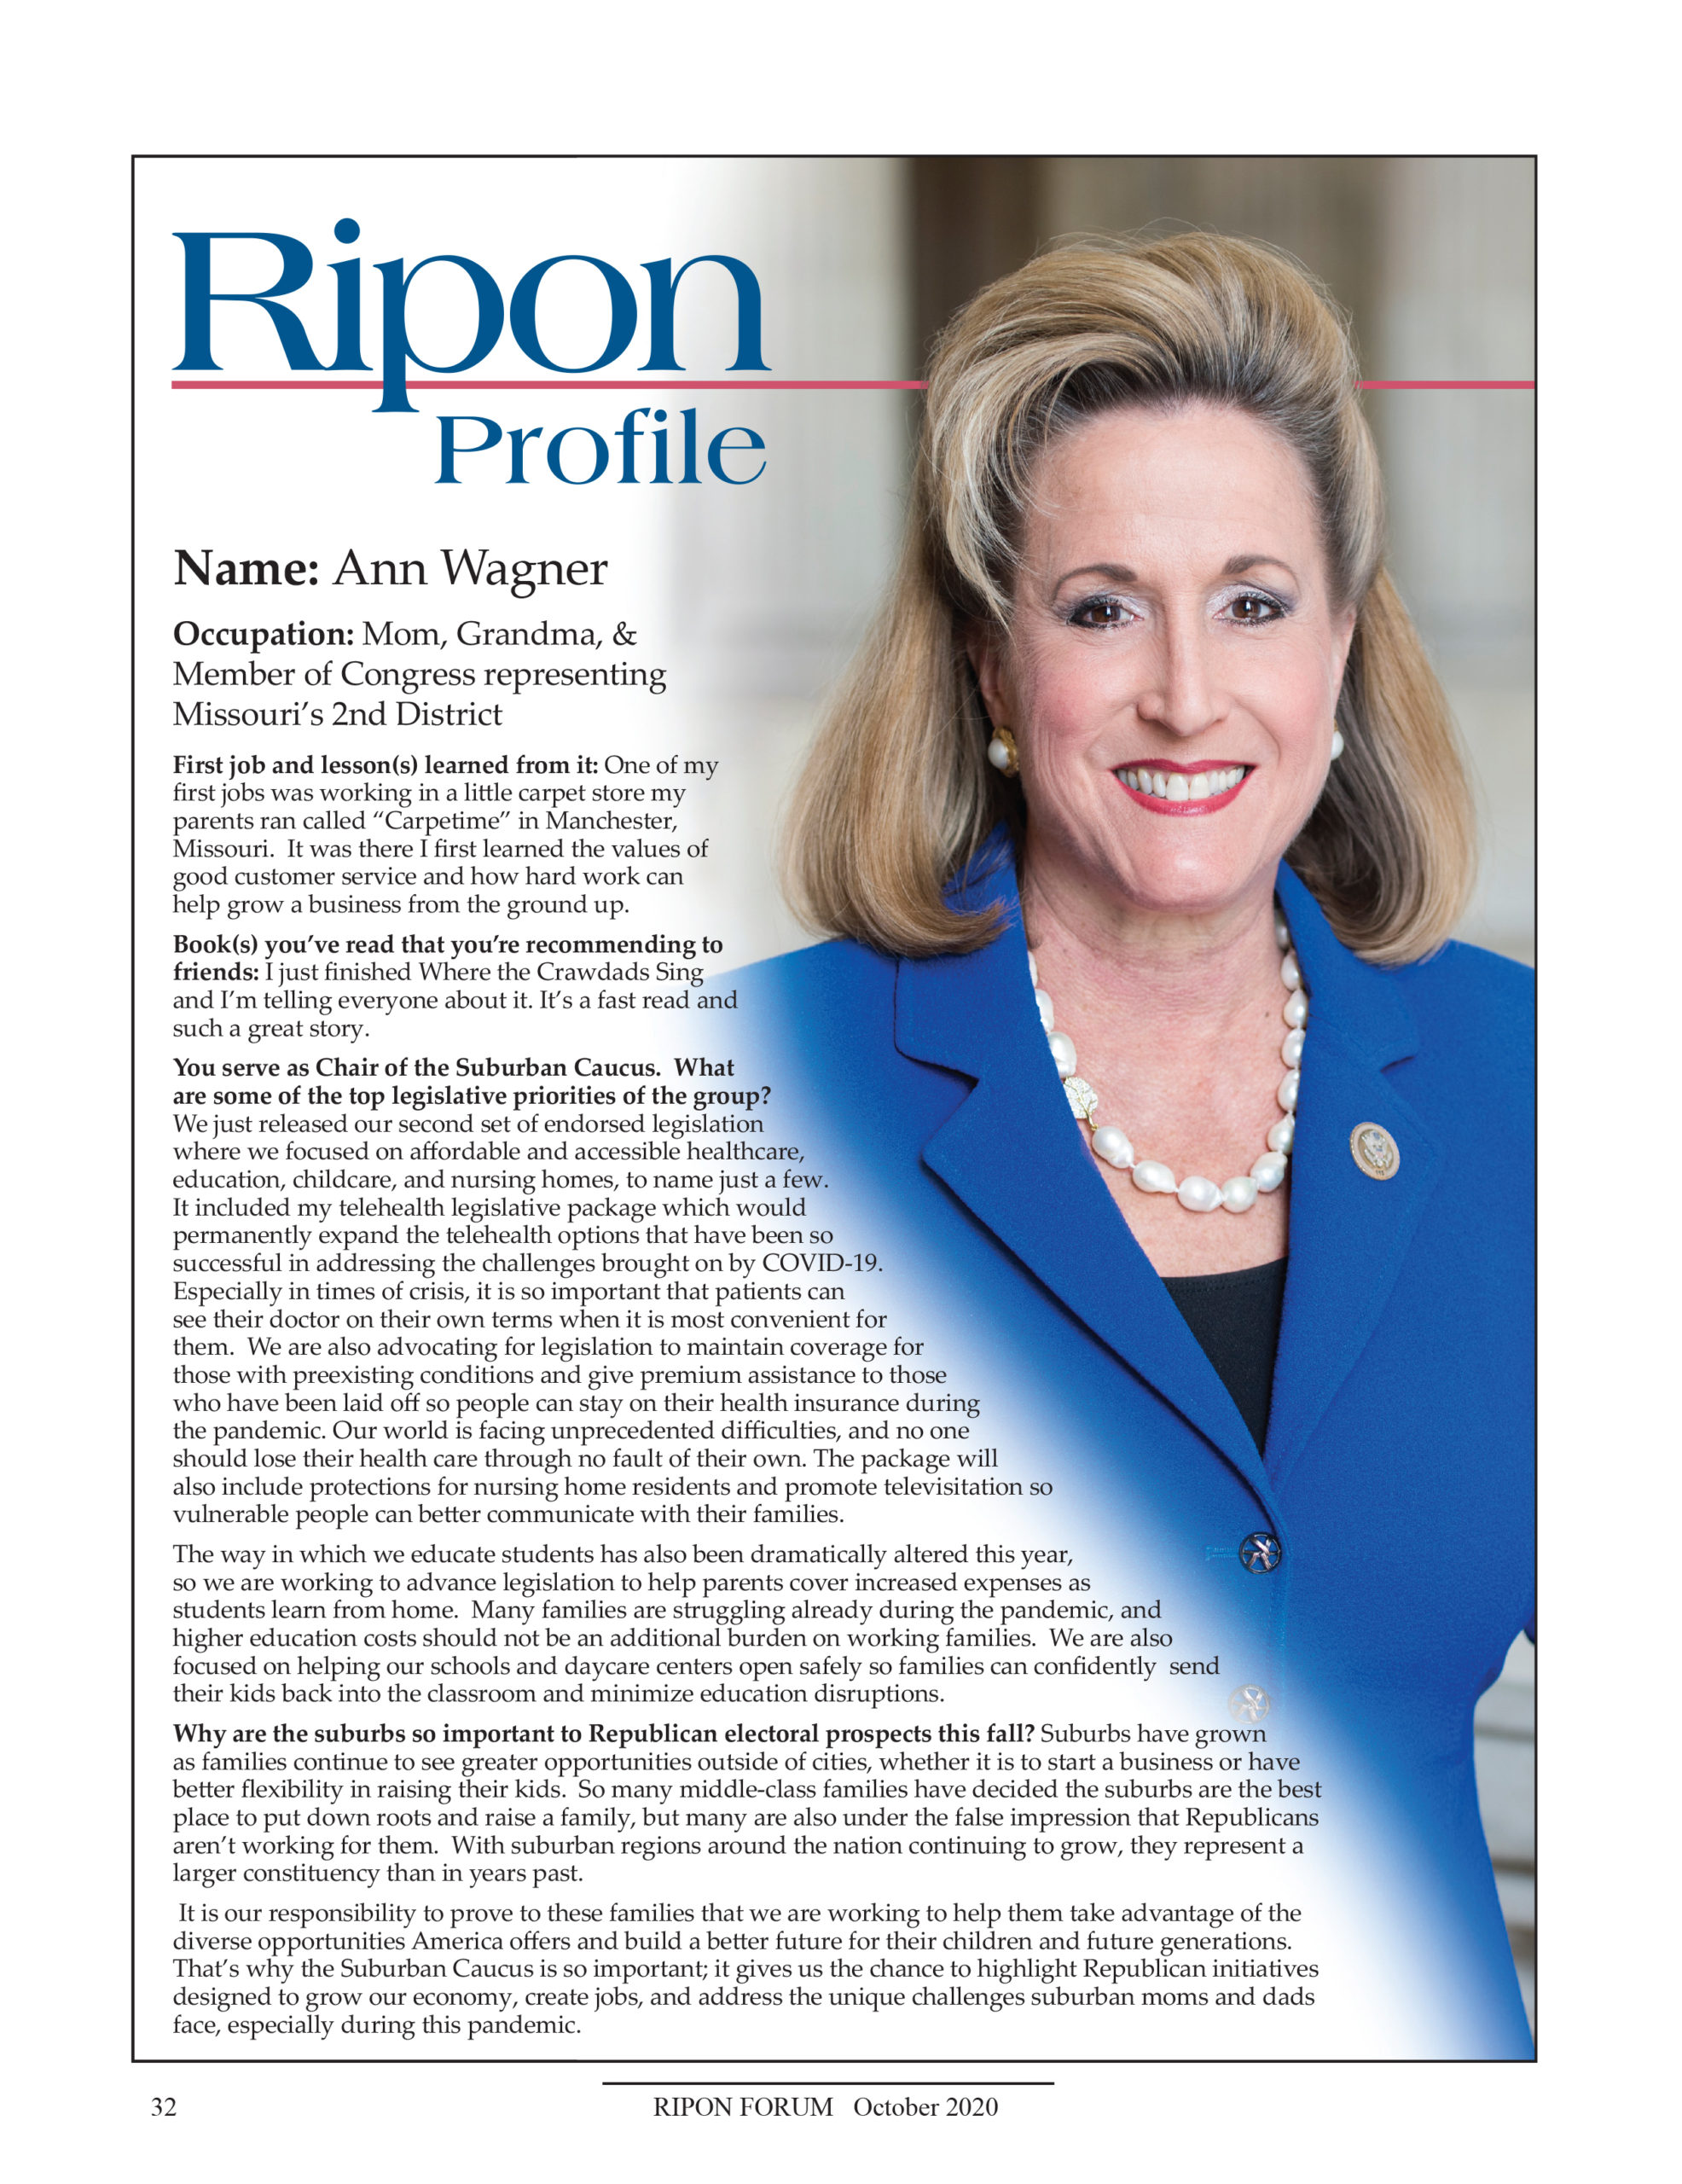 Ripon Profile of Ann Wagner